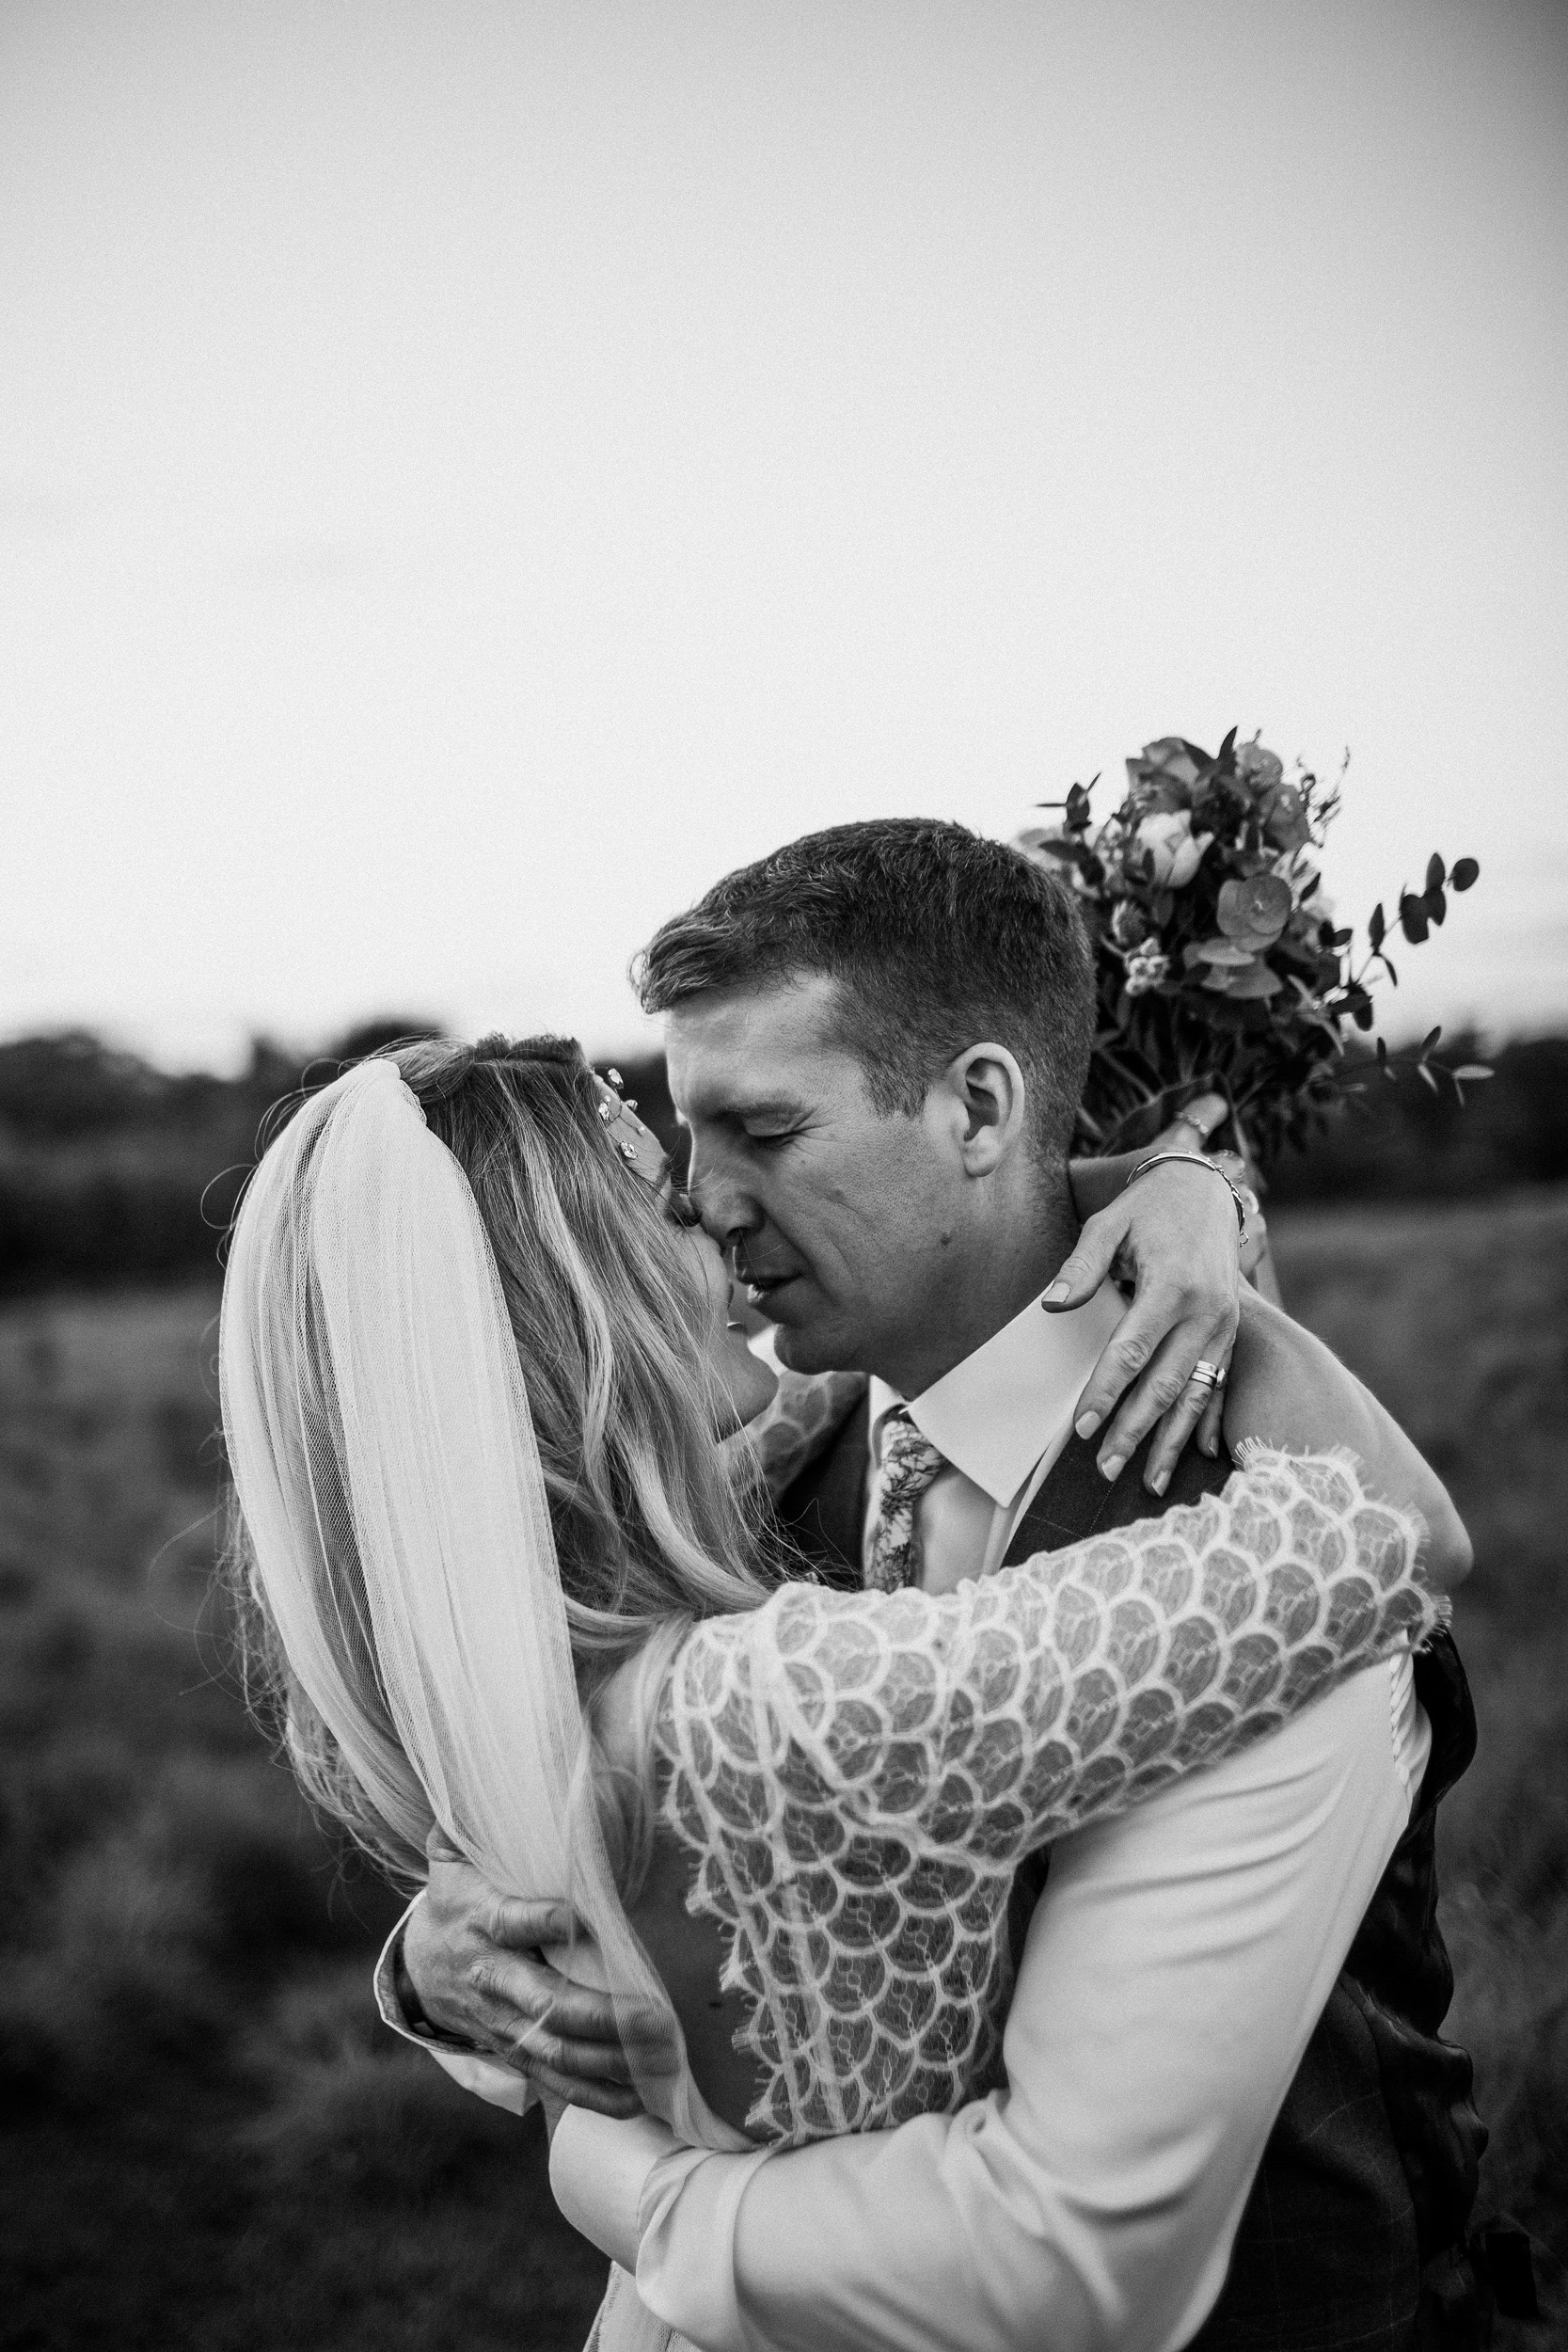 Gemma-Bohemian-Outdoor-Tipi-Wedding-Laid-Back-Relaxed-Family-Wedding-Kate-Beaumont-Astilbe-by-S6-Photography-Sheffield-69.jpg